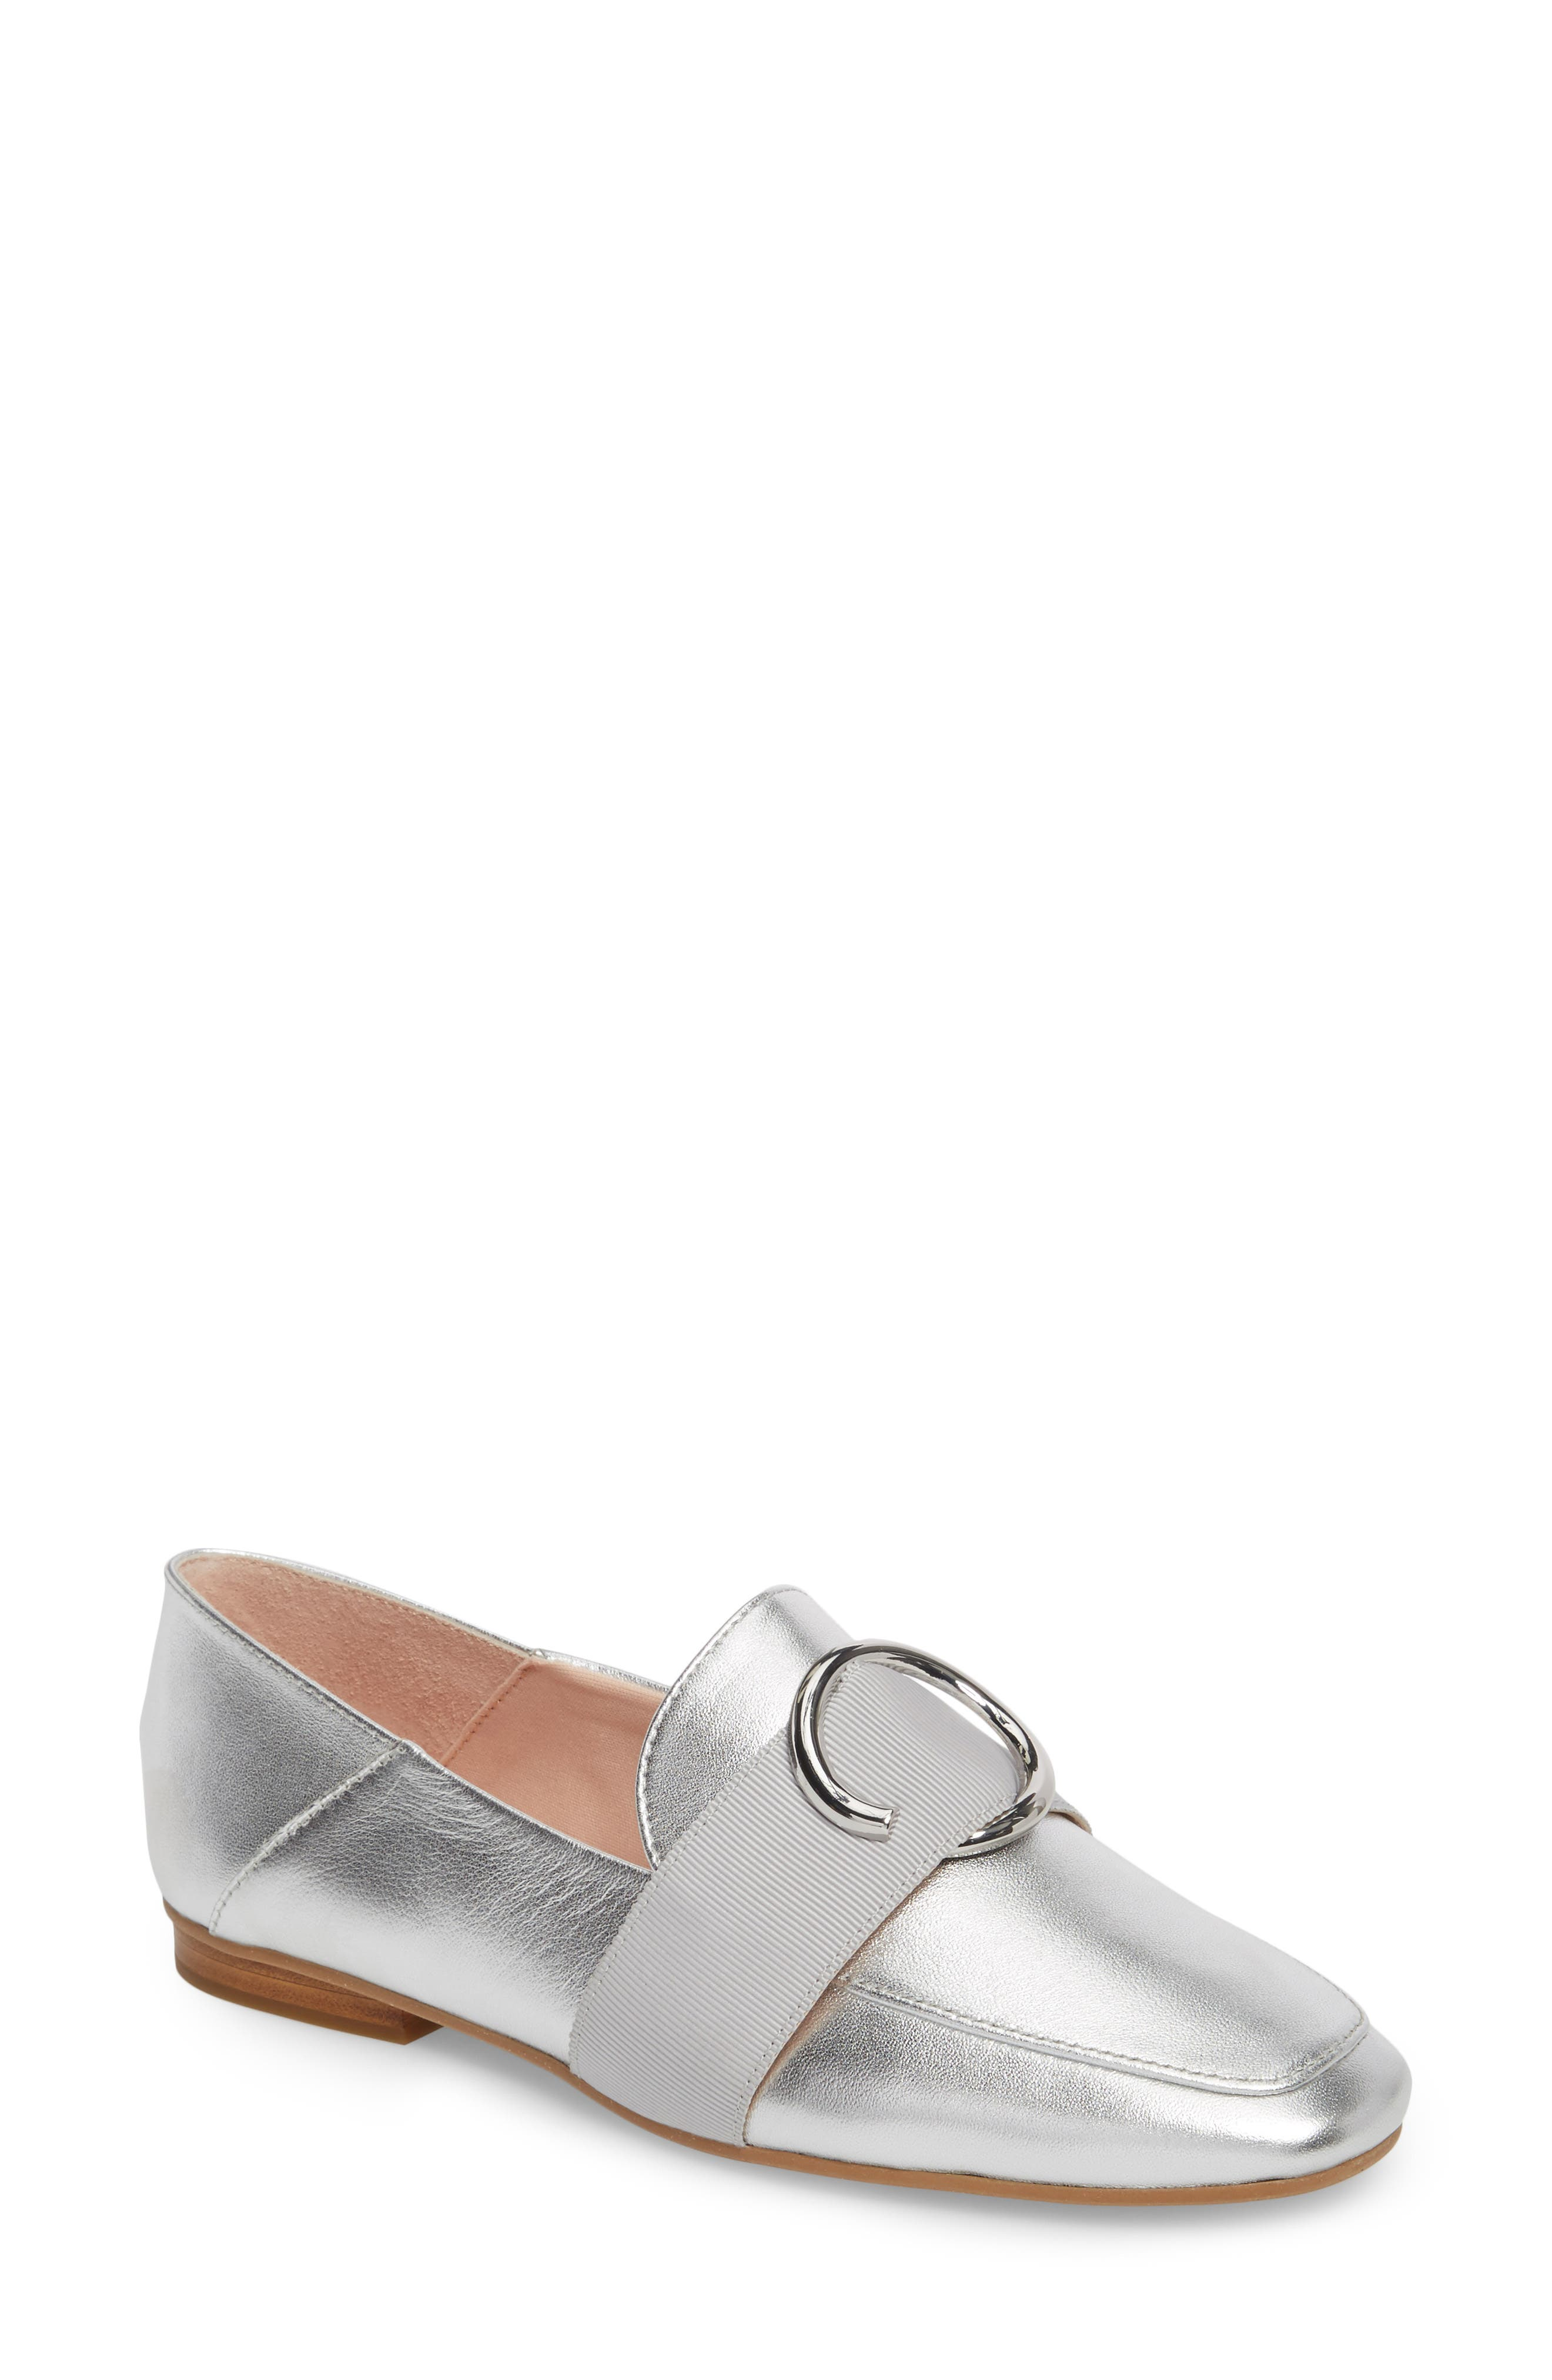 Ilani Convertible Slip Ring Loafer,                         Main,                         color, Silver Leather